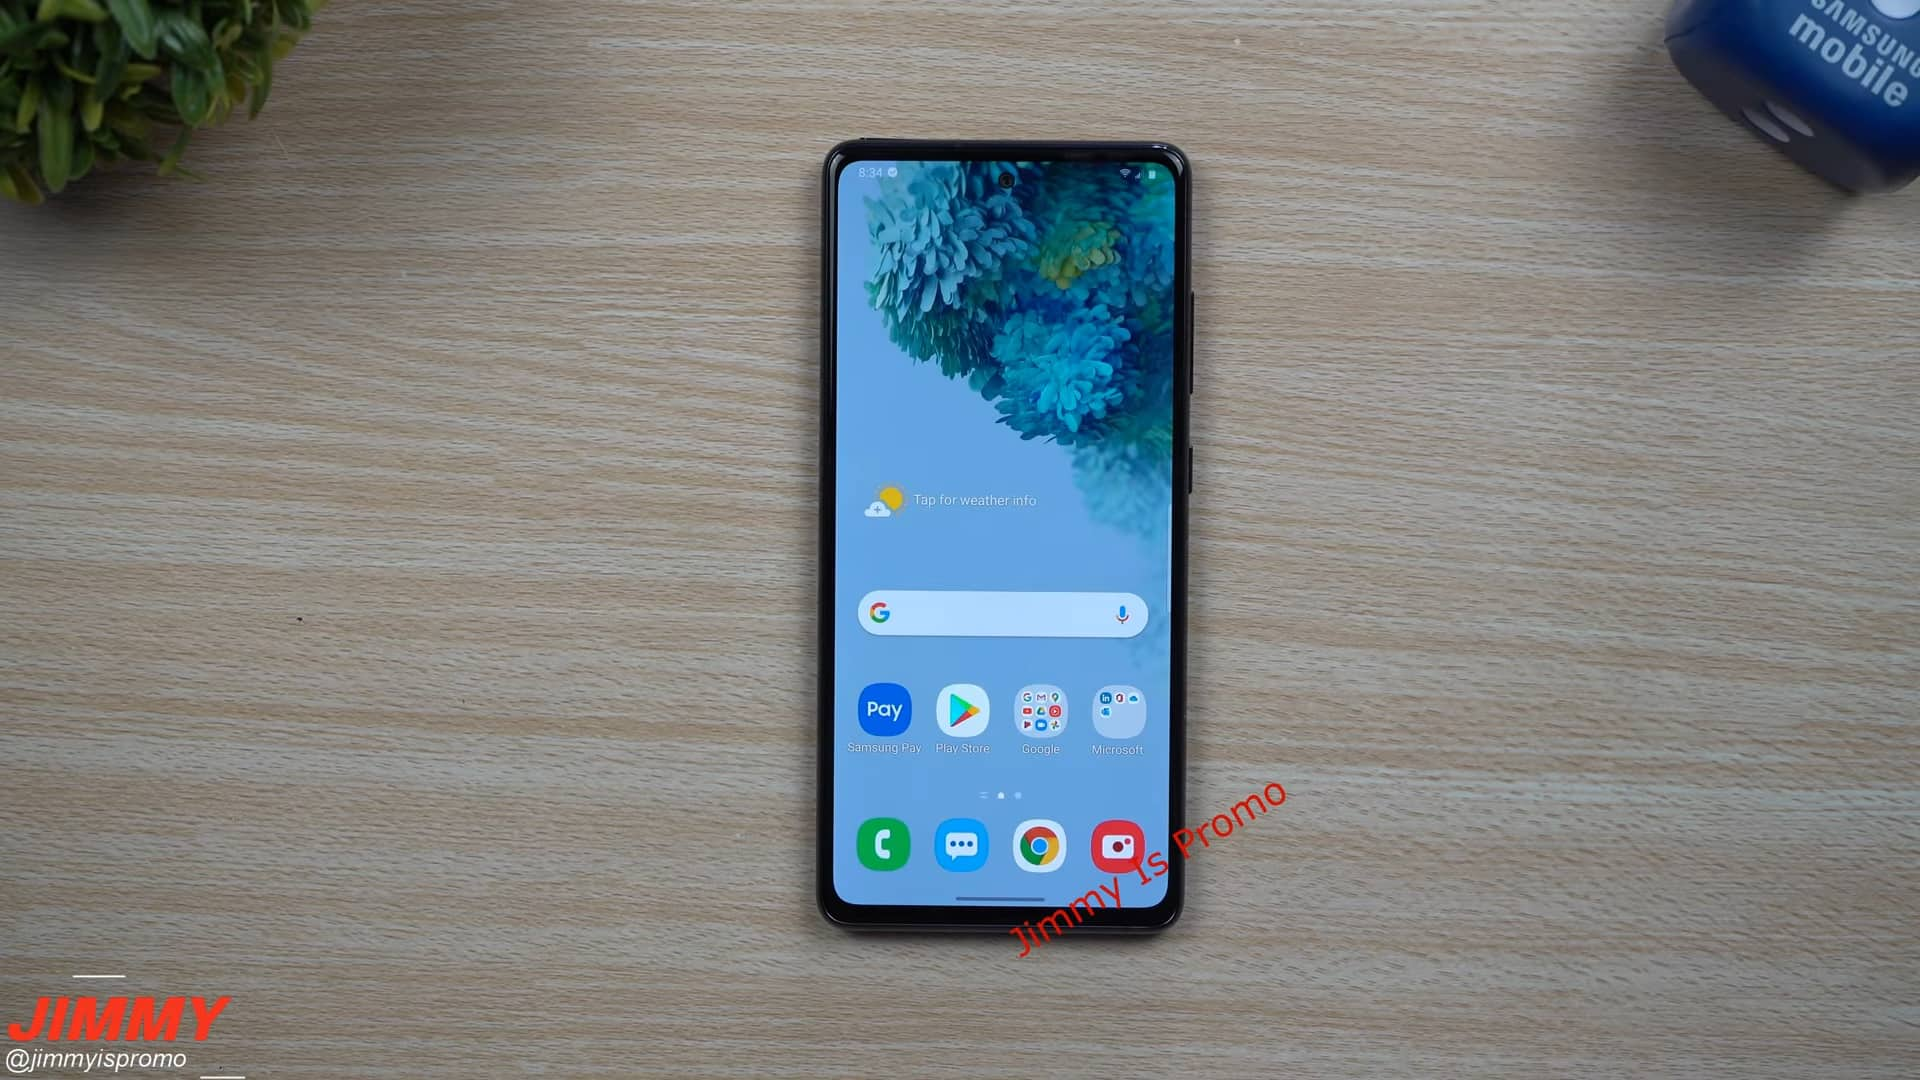 Samsung Galaxy S20 Fe Hands On Video Spills The Beans